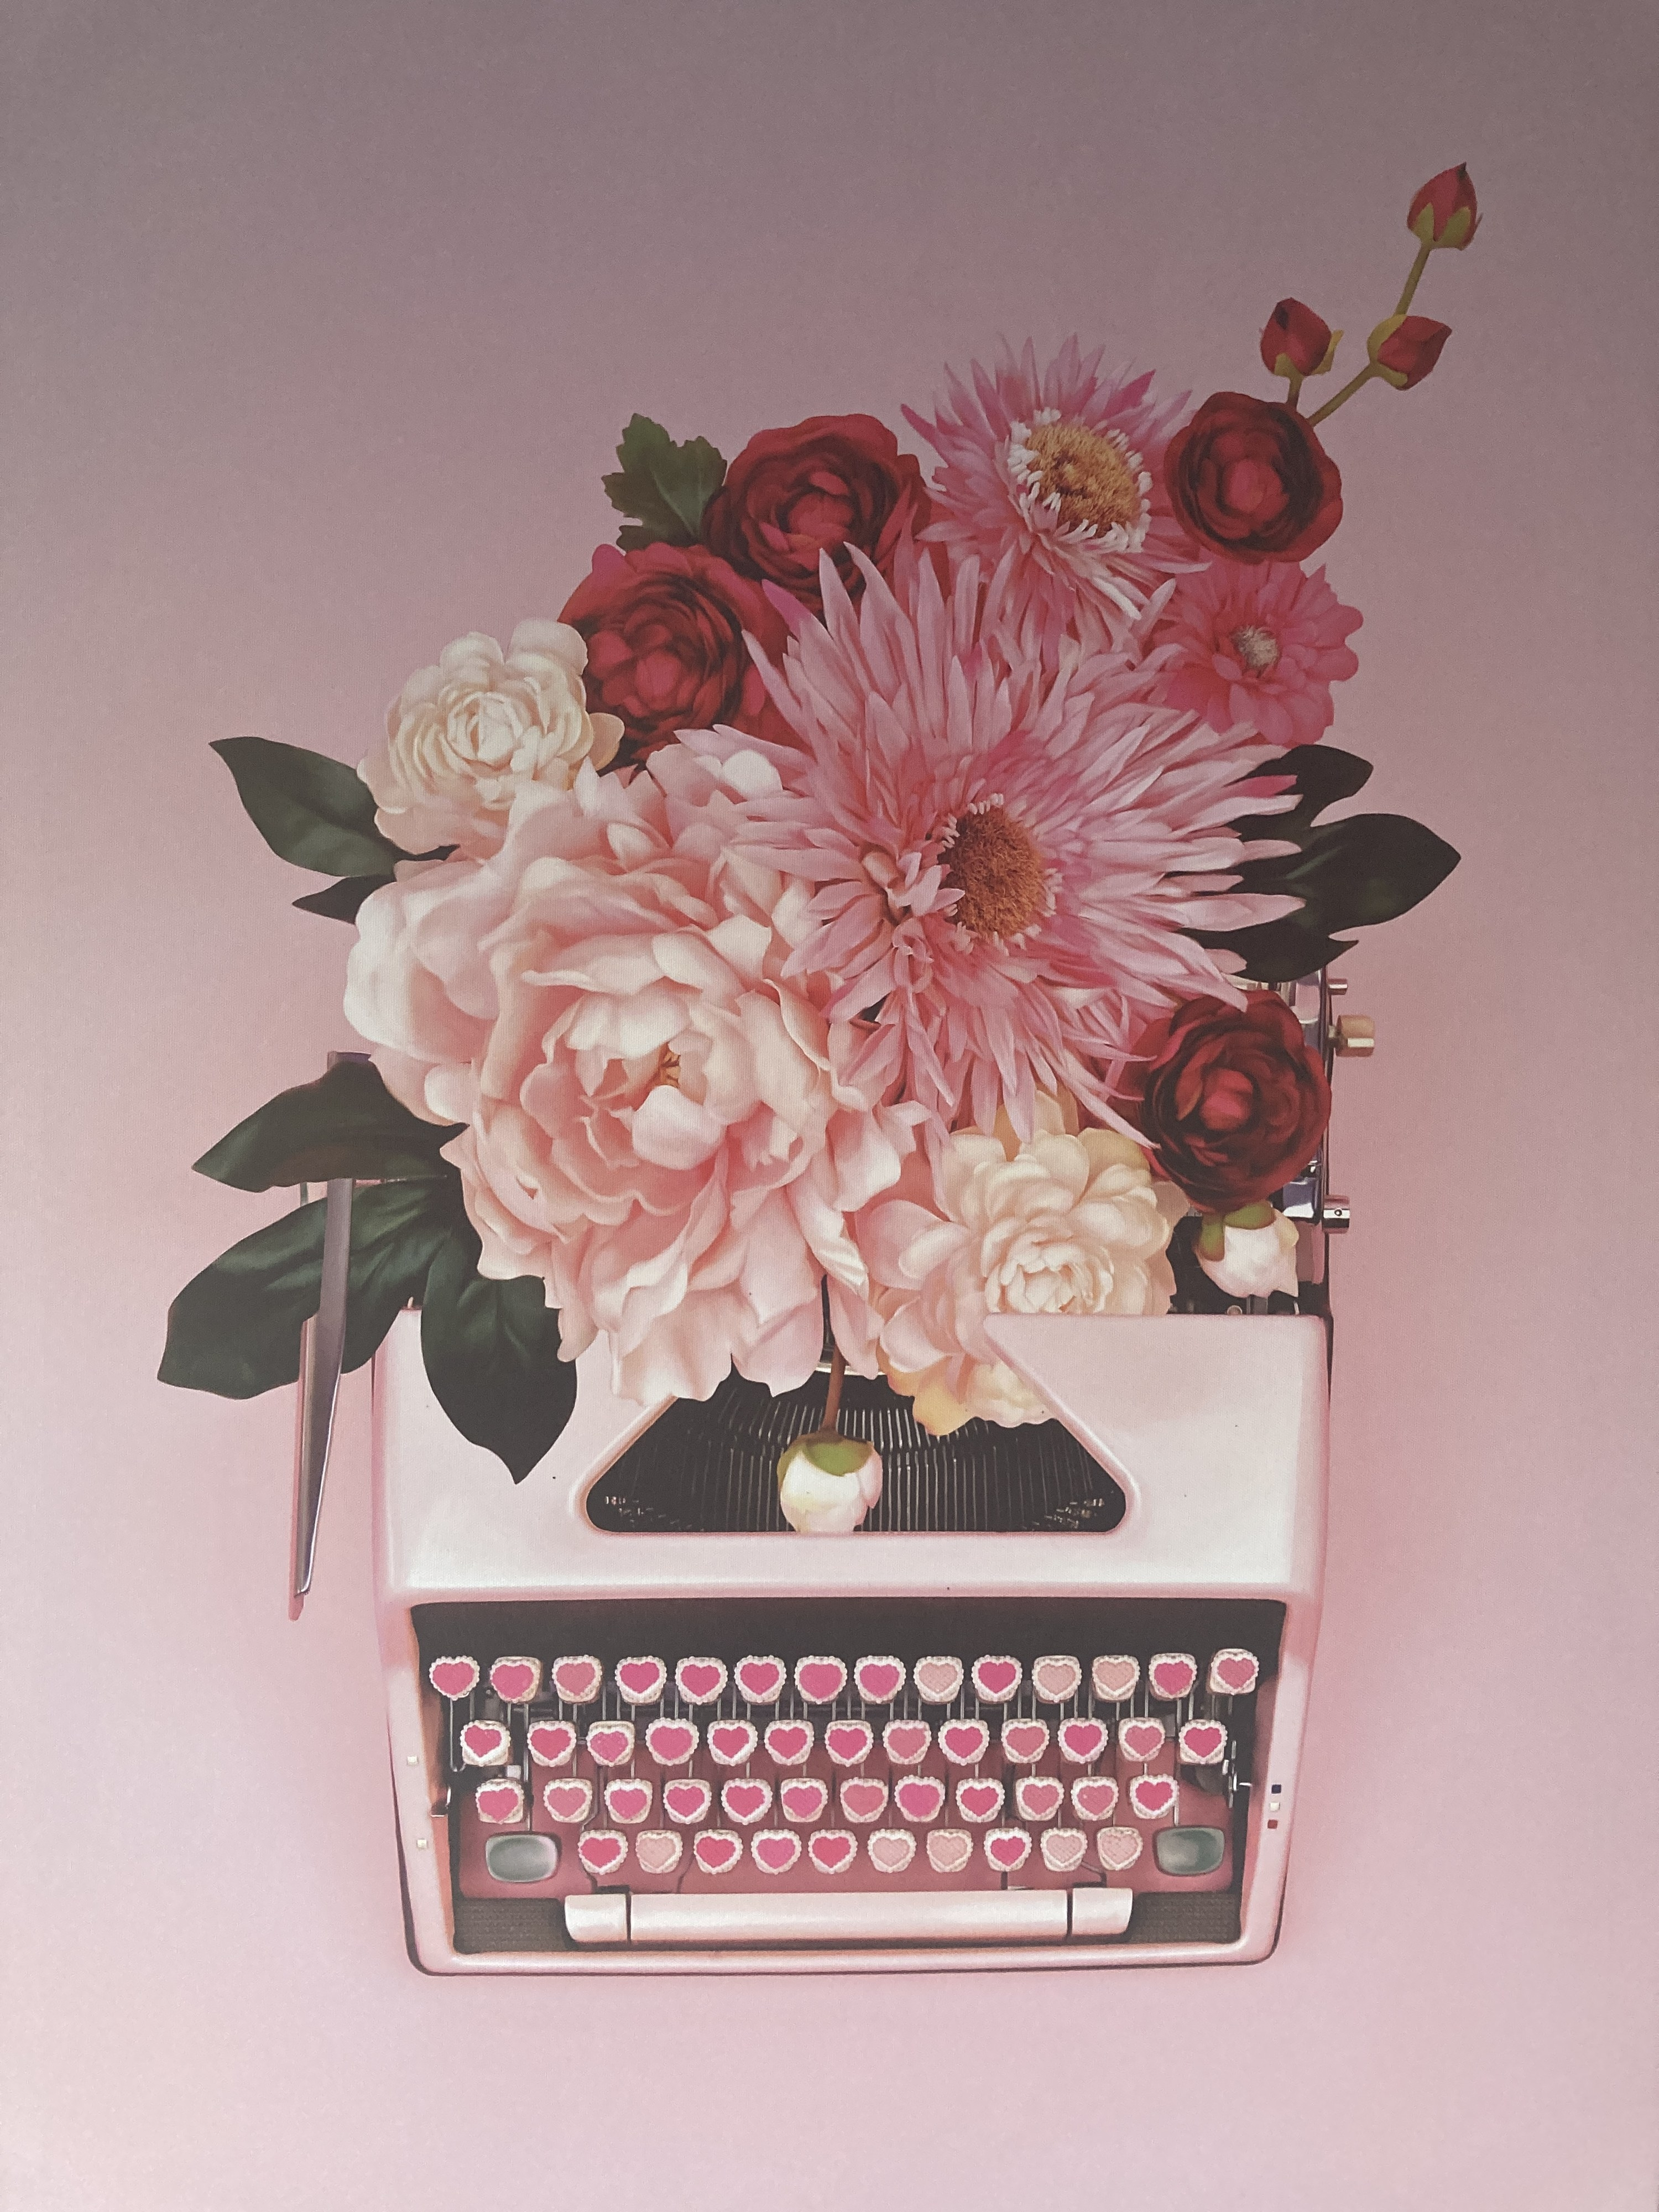 A canvas with a typewriter with flowers coming out the top